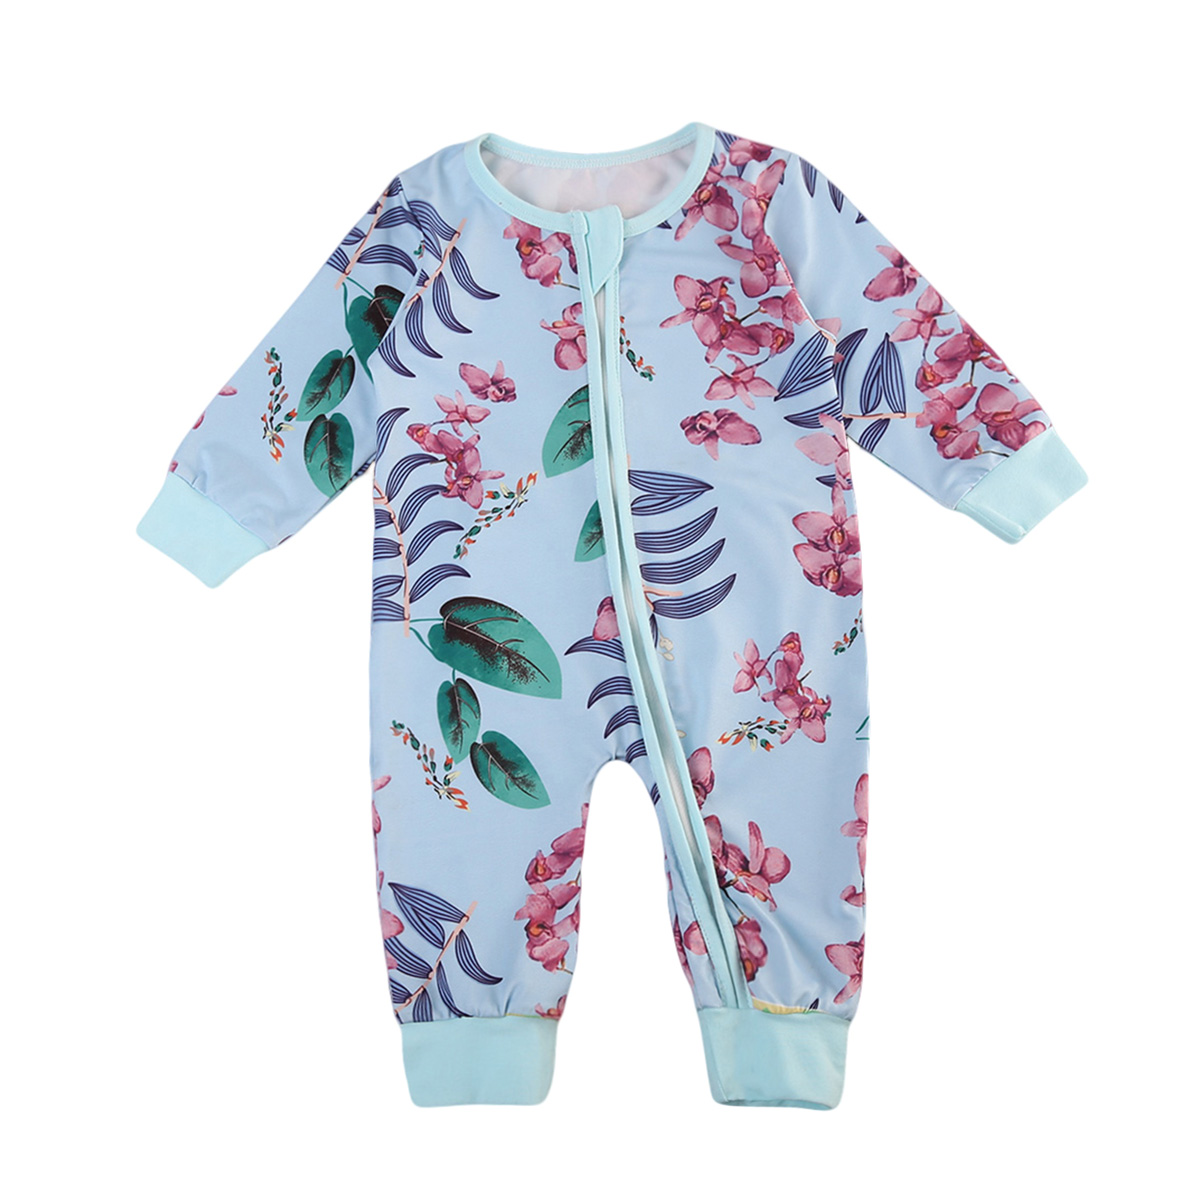 Pudcoco 0-24M Newborn Toddler Baby Boy Girl Cute Romper Floral Jumpsuit Blue Zipper Outfit Baby Clothes Autumn Cotton 0-24M